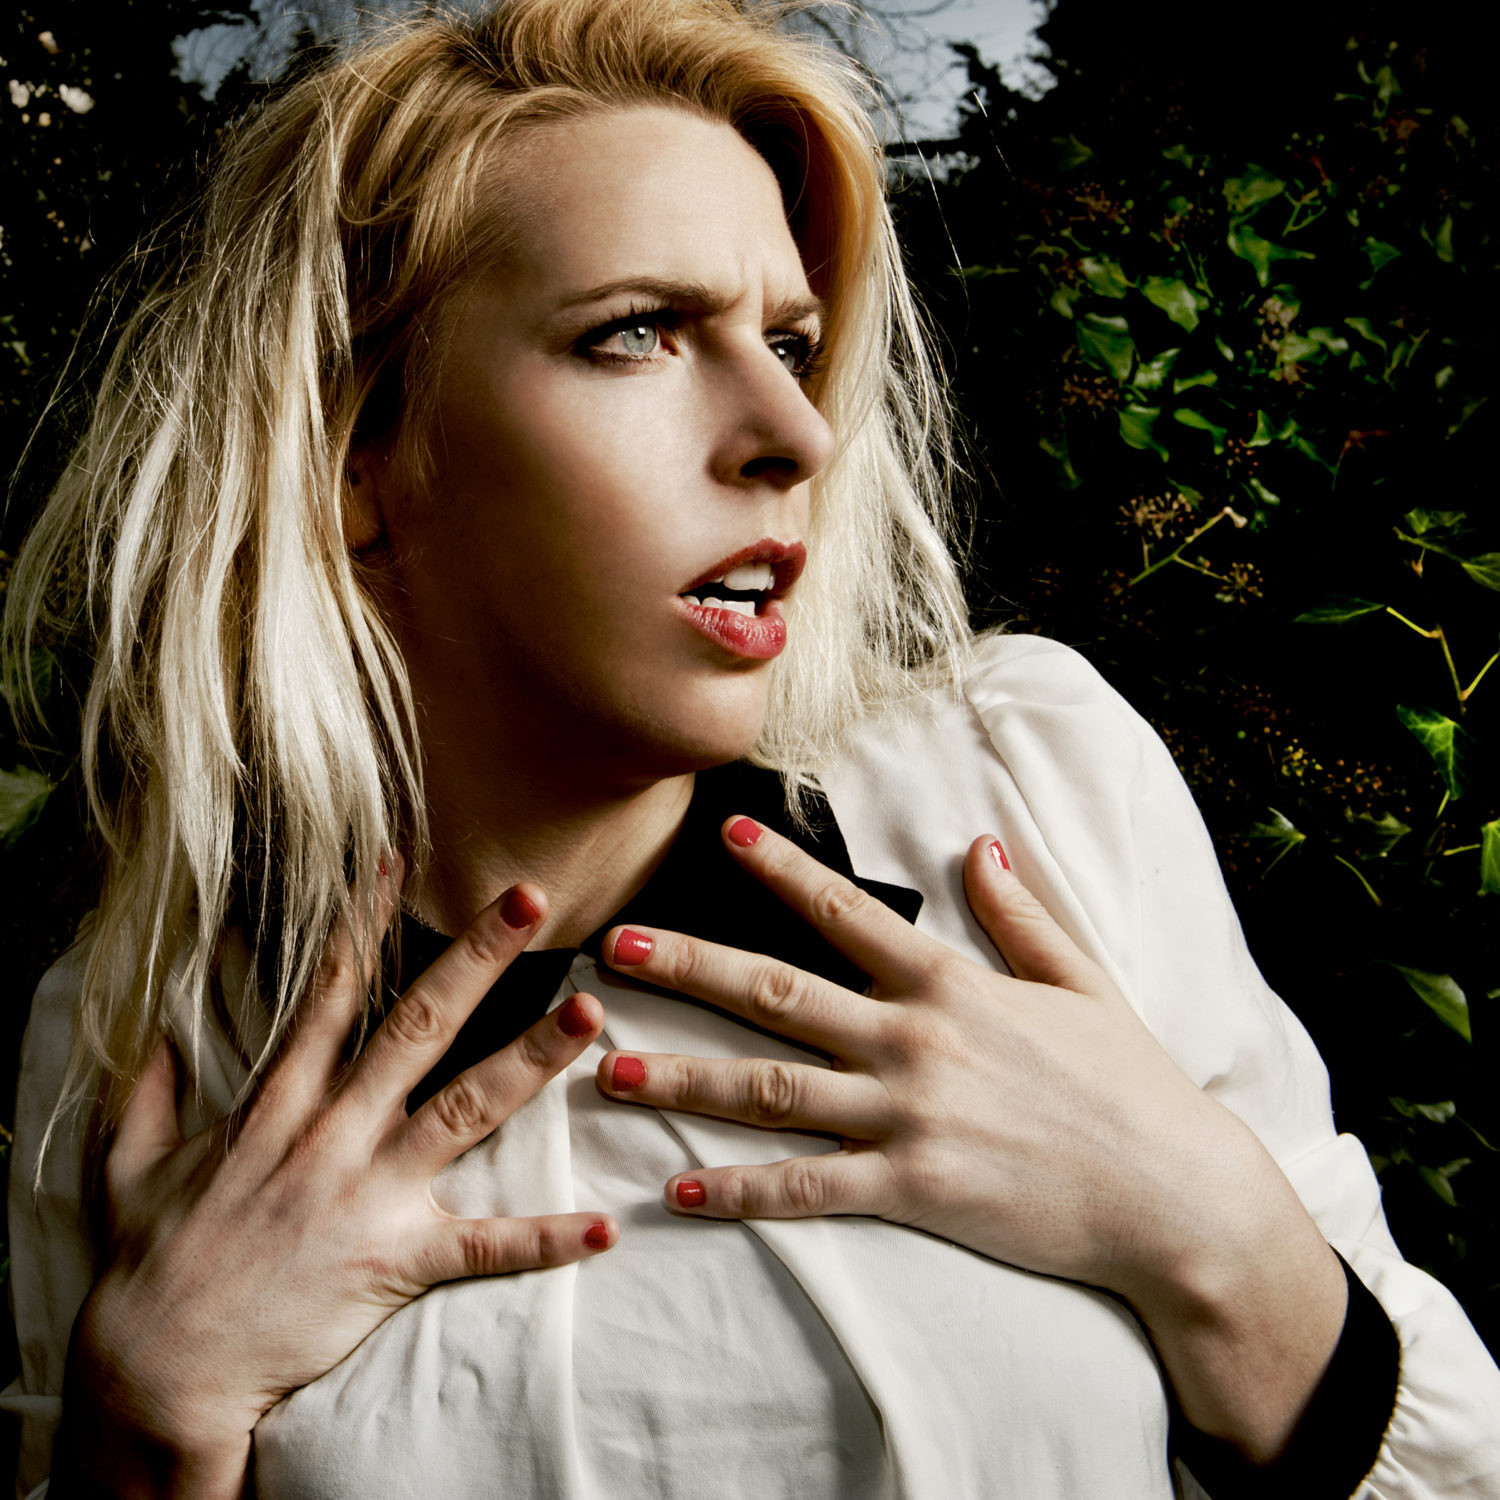 SARA PASCOE | Q&A • Buzz Magazine: www.buzzmag.co.uk/uncategorized/sara-pascoe-qa